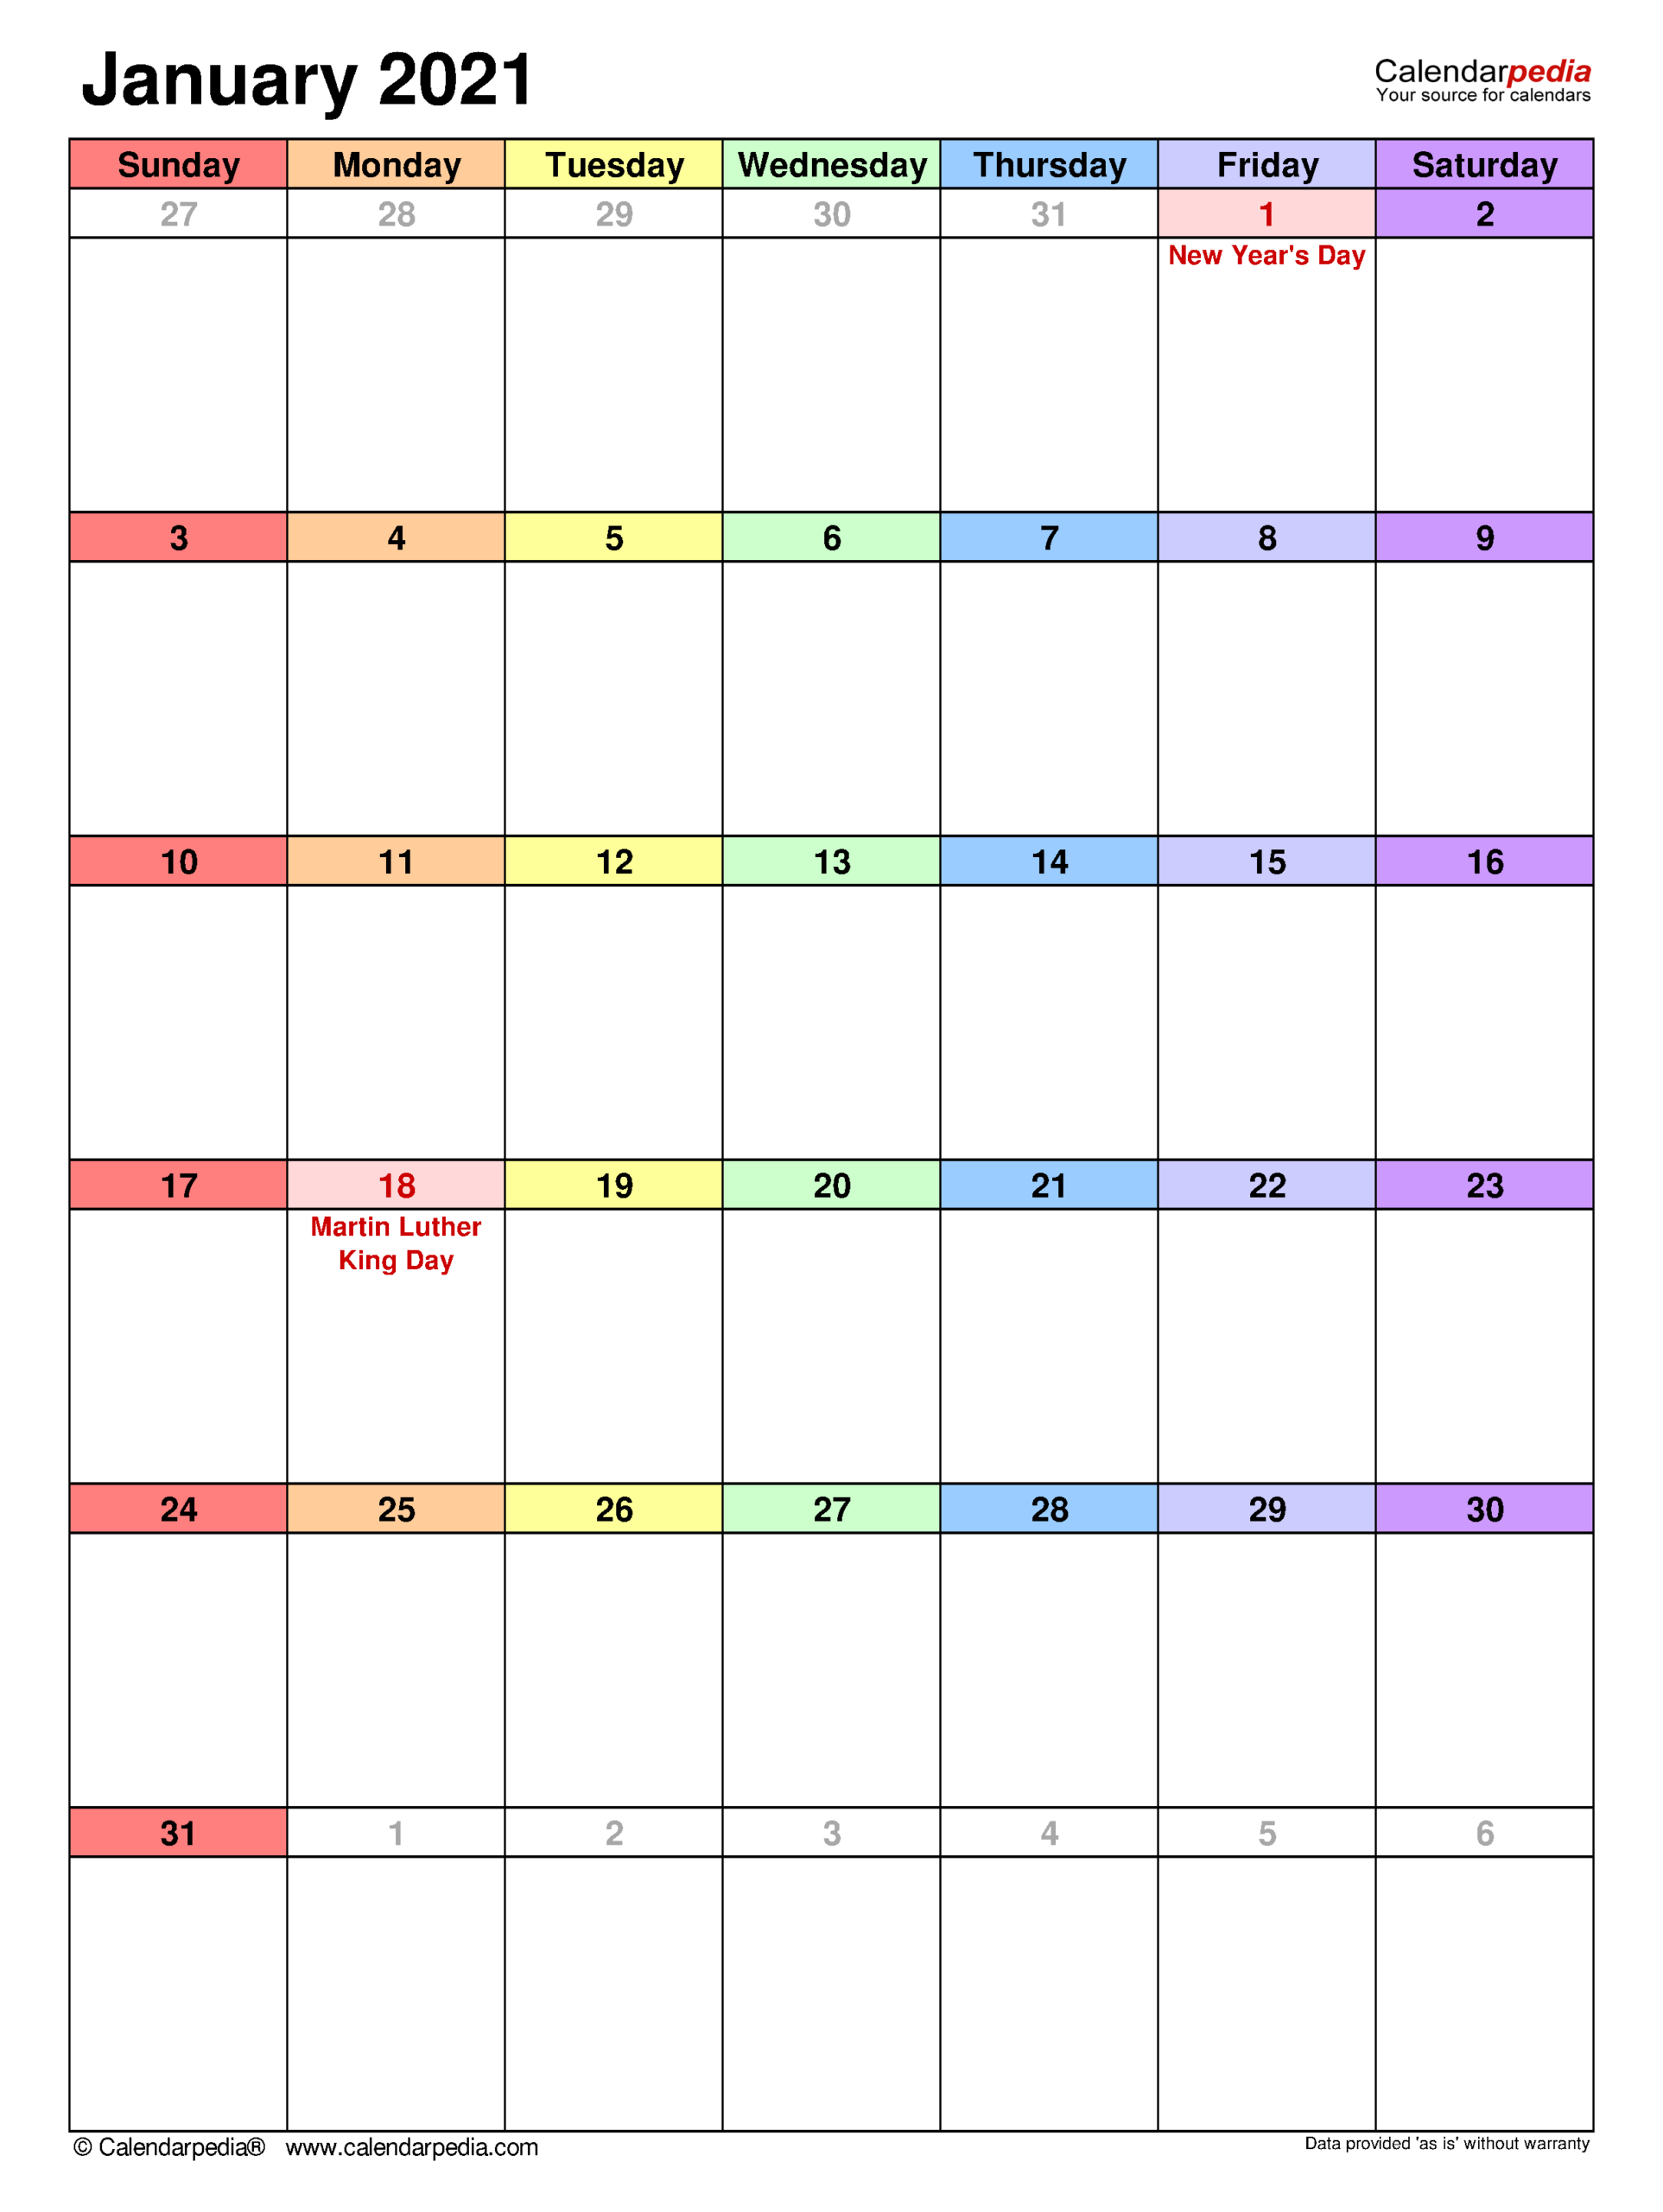 January 2021 Calendar | Templates For Word, Excel And Pdf with regard to Shift Schedule Jan 2021